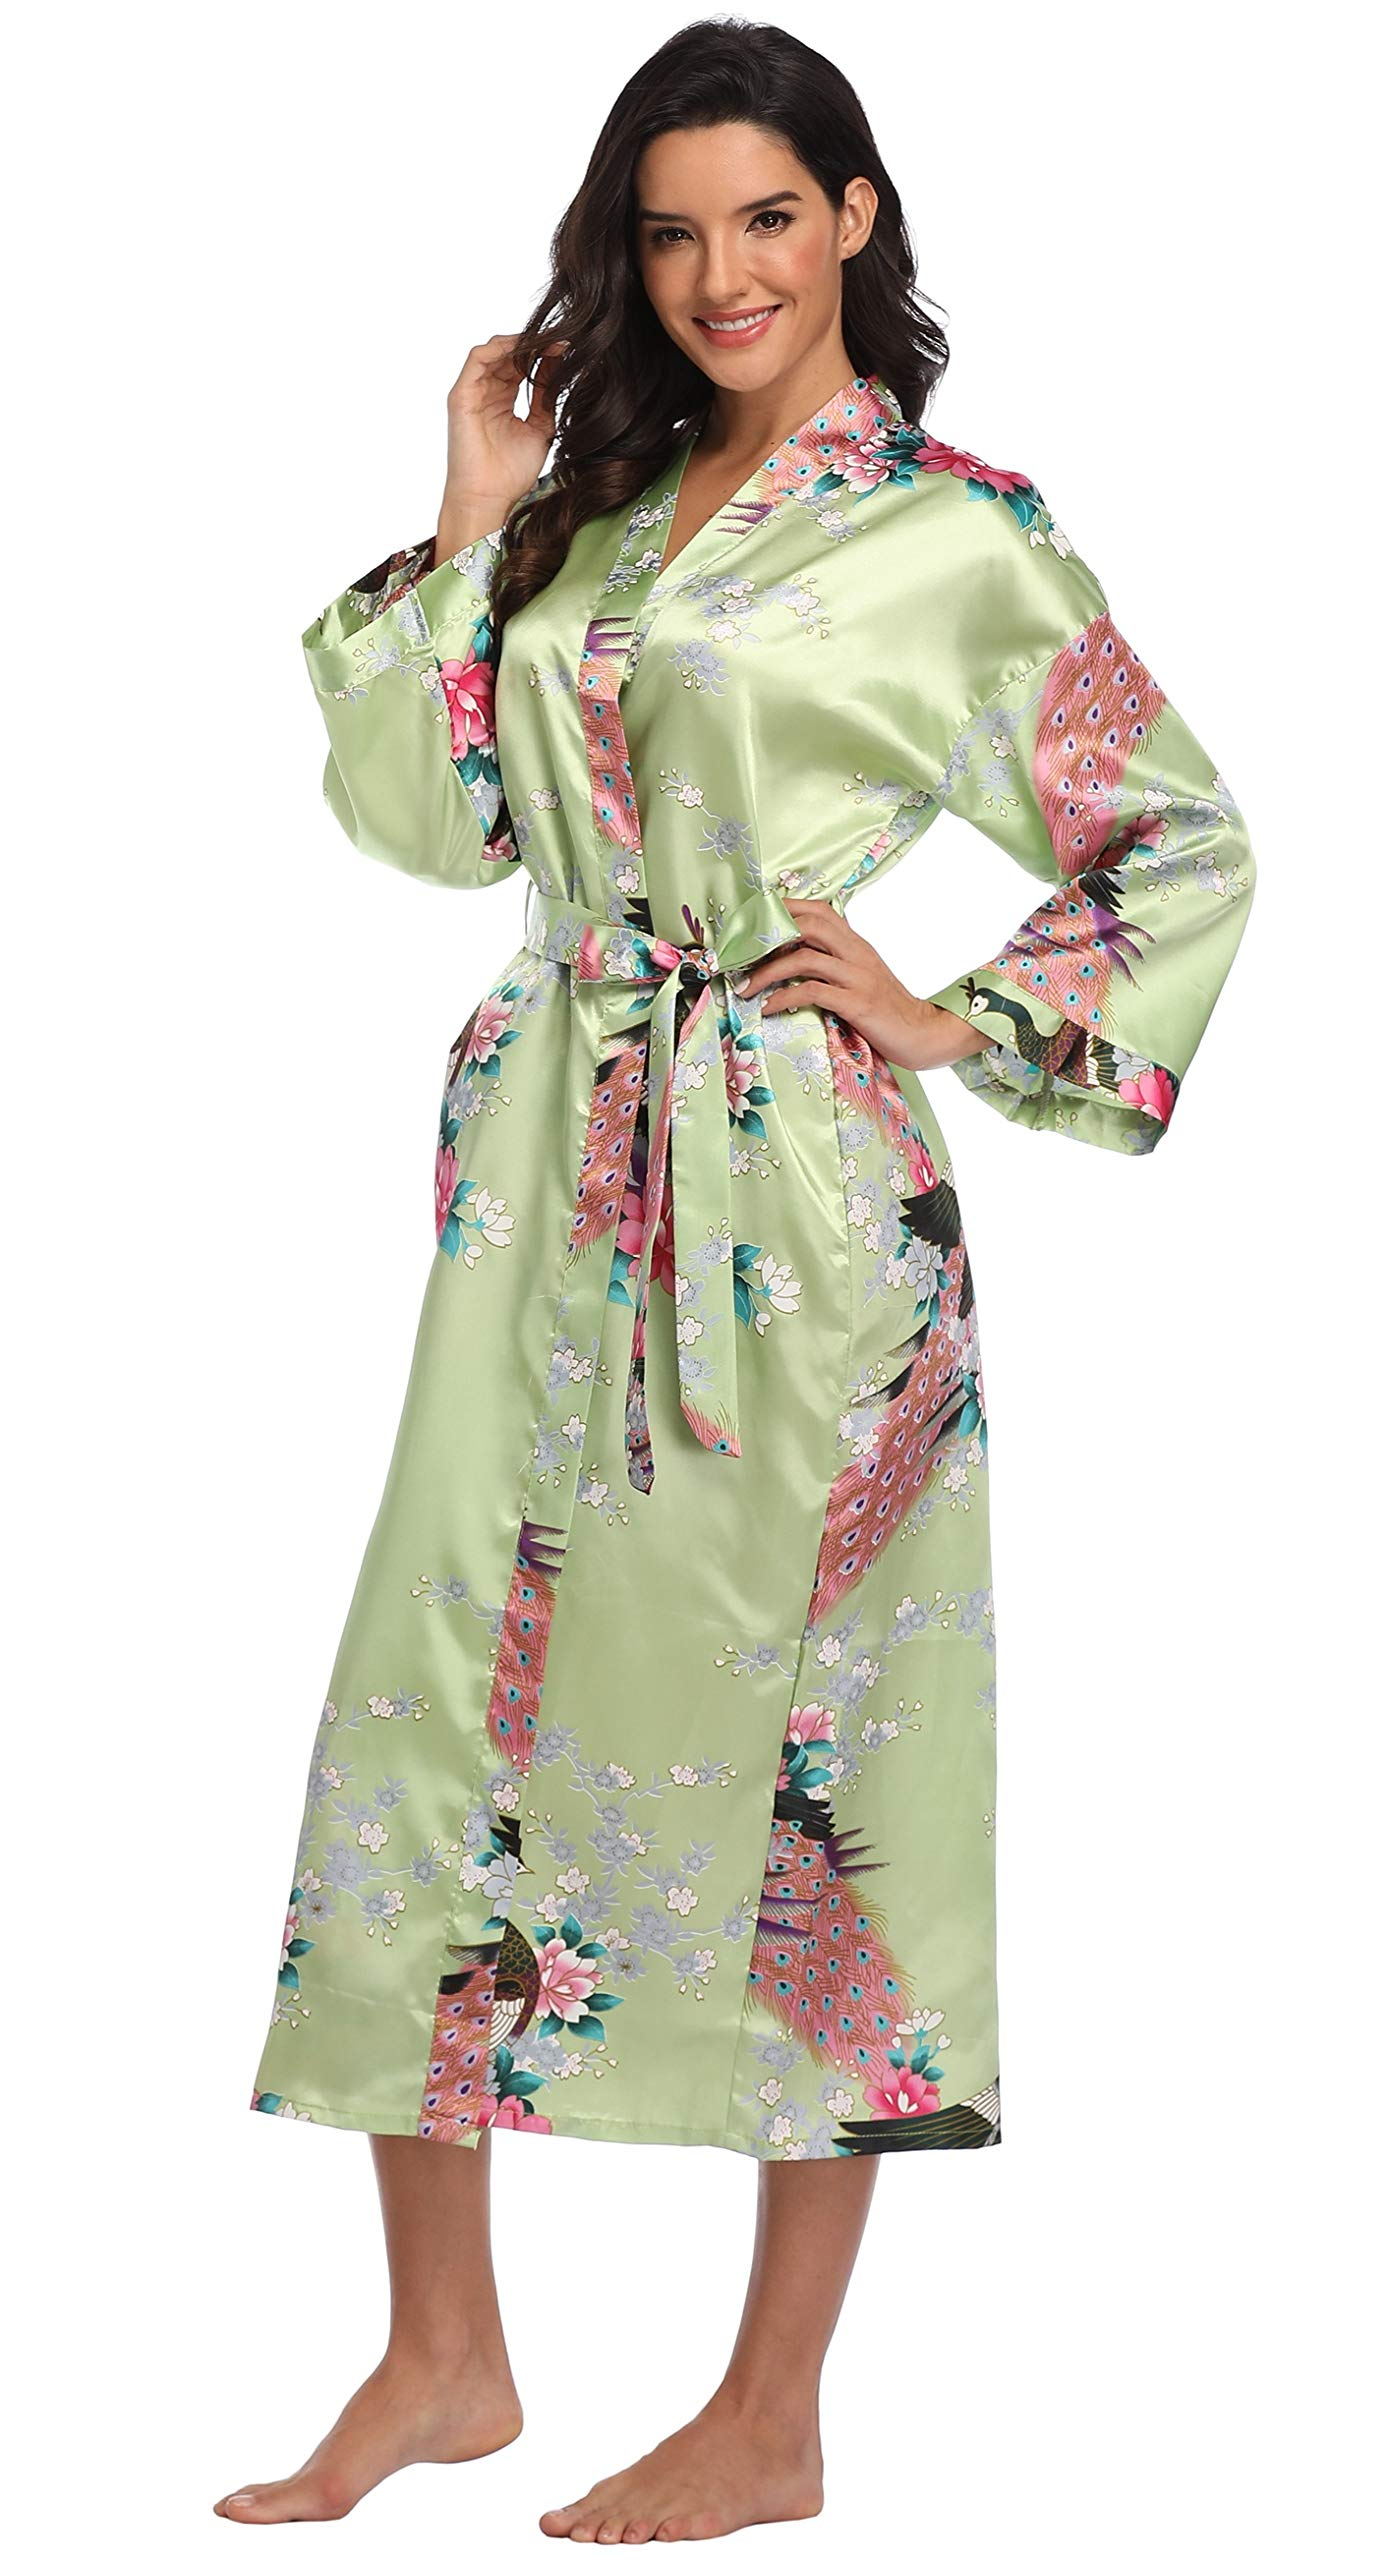 Mignon Cromwell Women's Long Floral Robe Bride Bridemaids Dressing Gown Silky